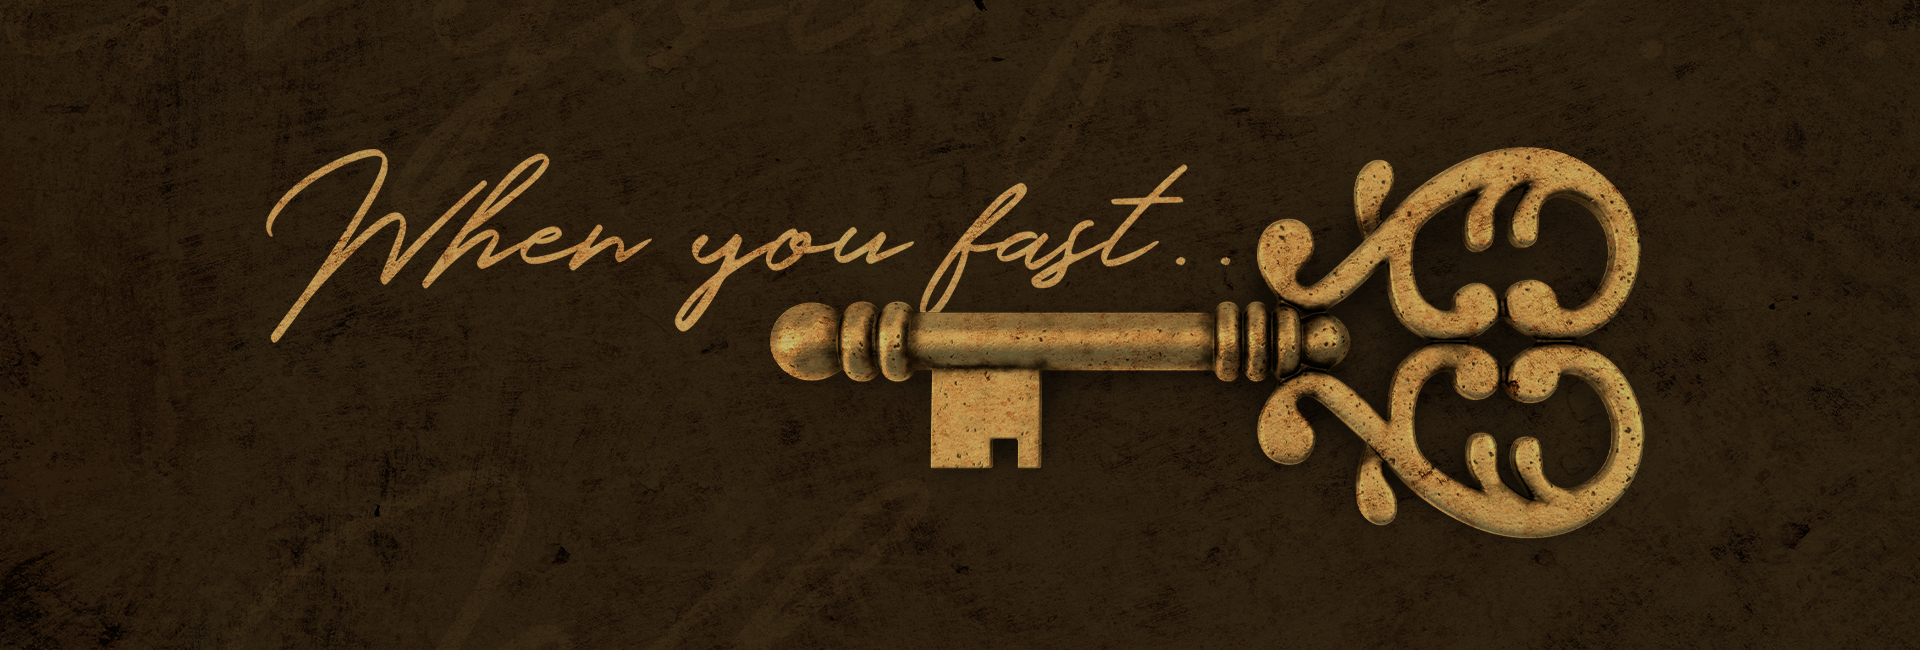 When You Fast…